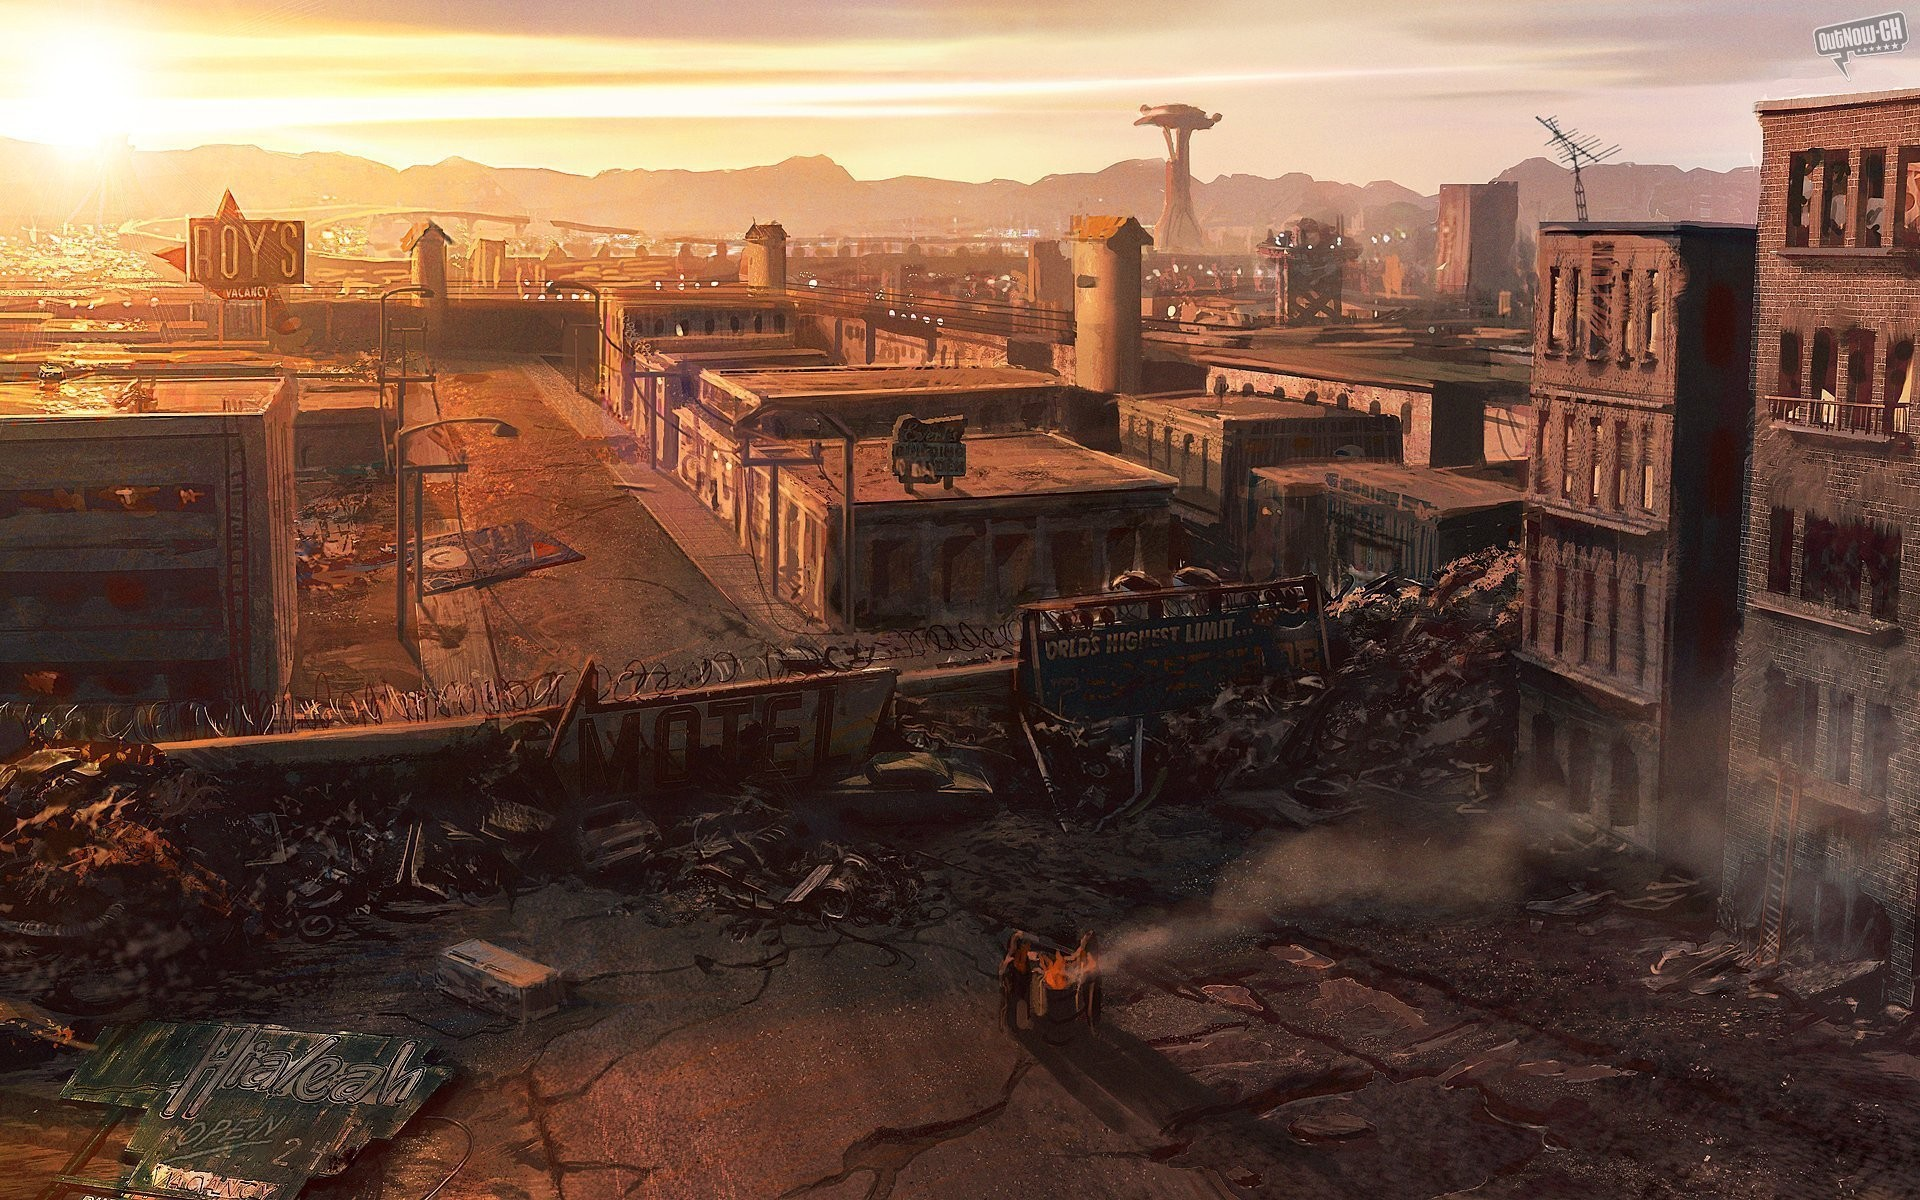 Post apocalyptic Las Vegas from Fallout